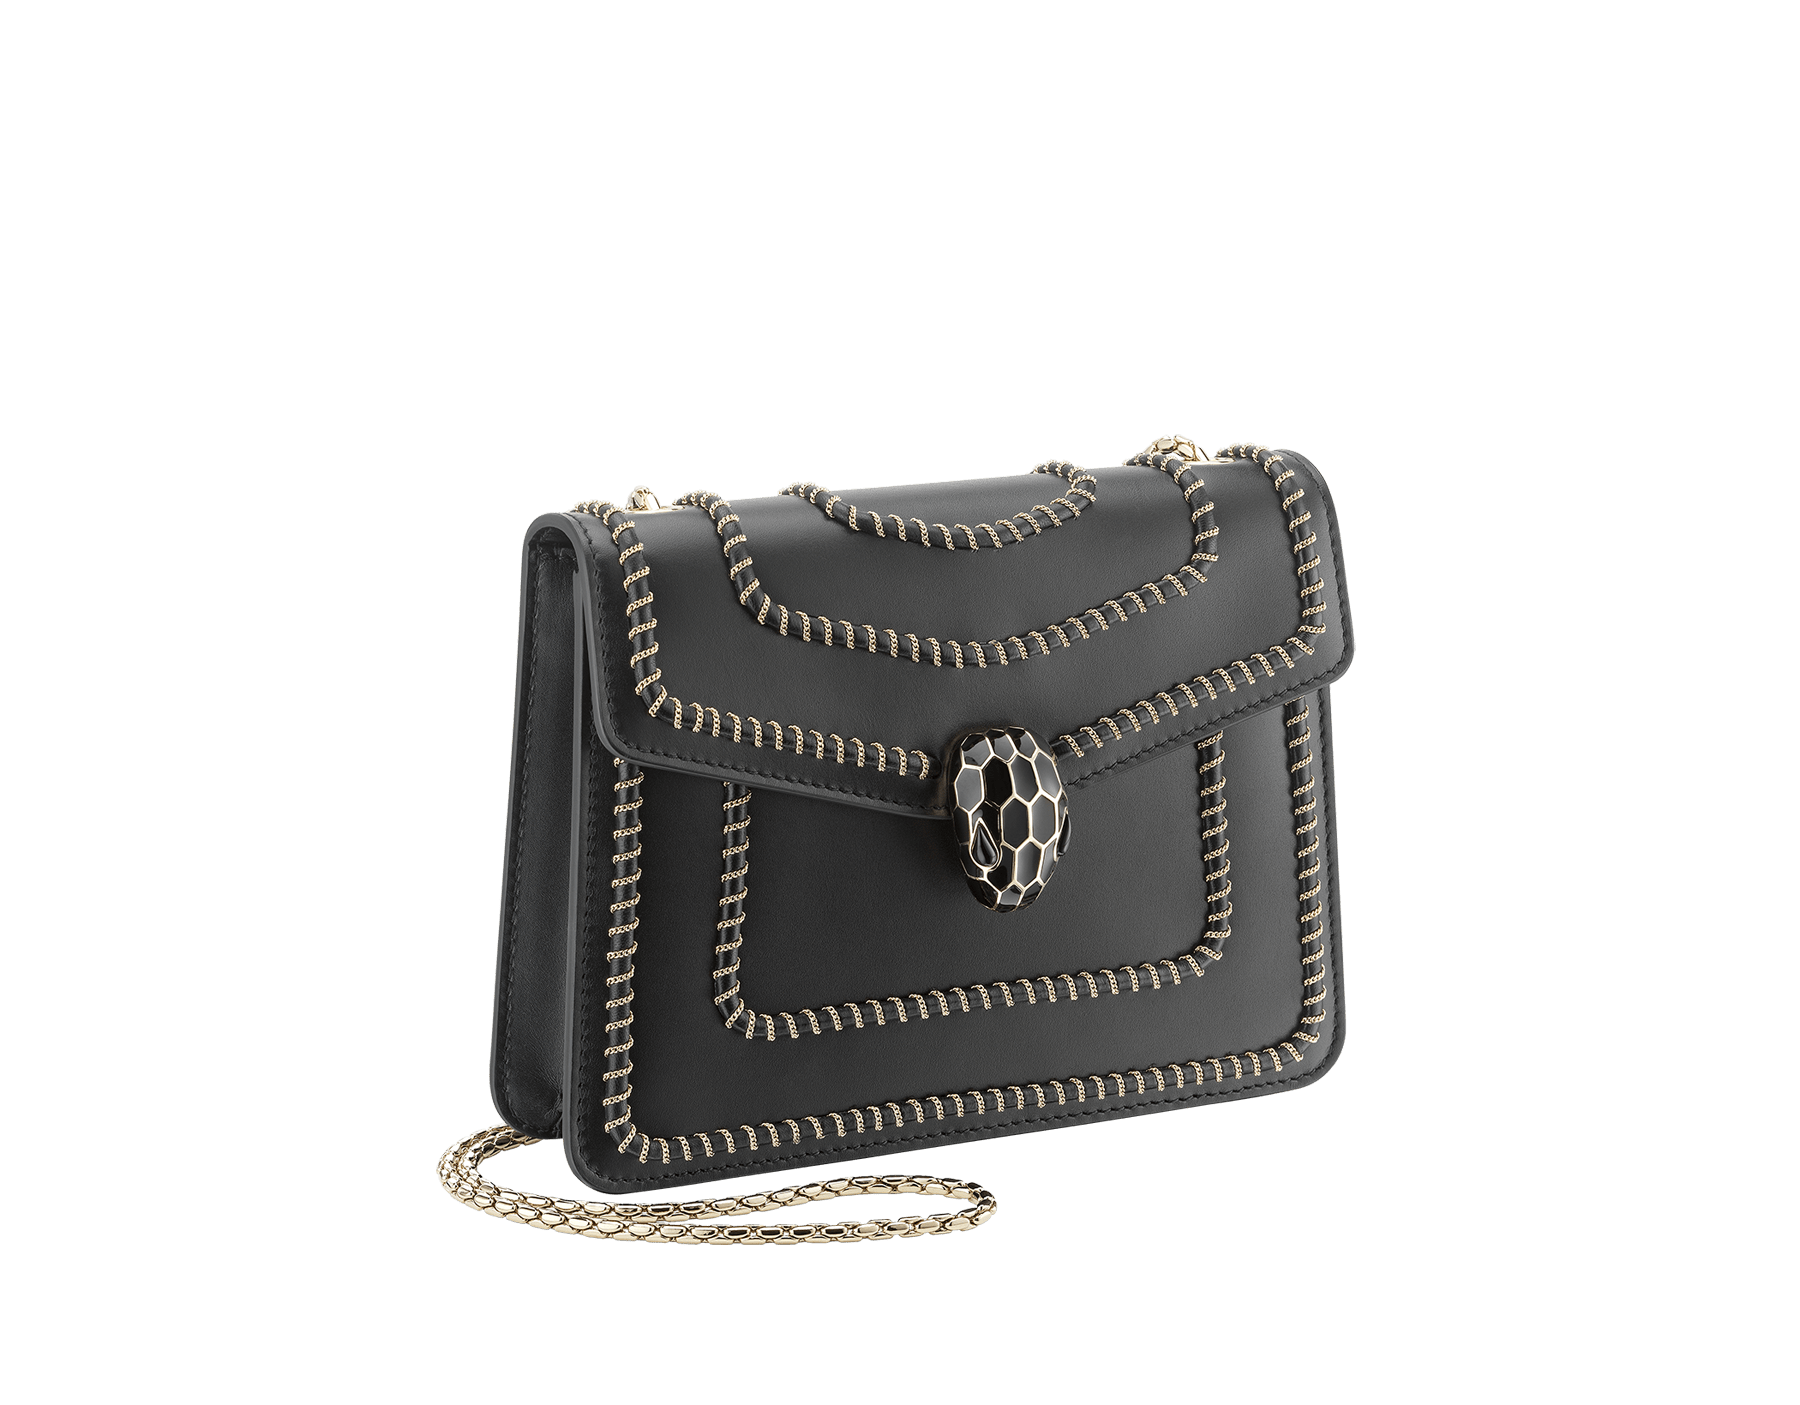 """Serpenti Forever"" crossbody bag in black calf leather, featuring a Woven Chain motif. Iconic snakehead closure in light gold plated brass enriched with shiny black enamel and black onyx eyes 422-WC image 2"